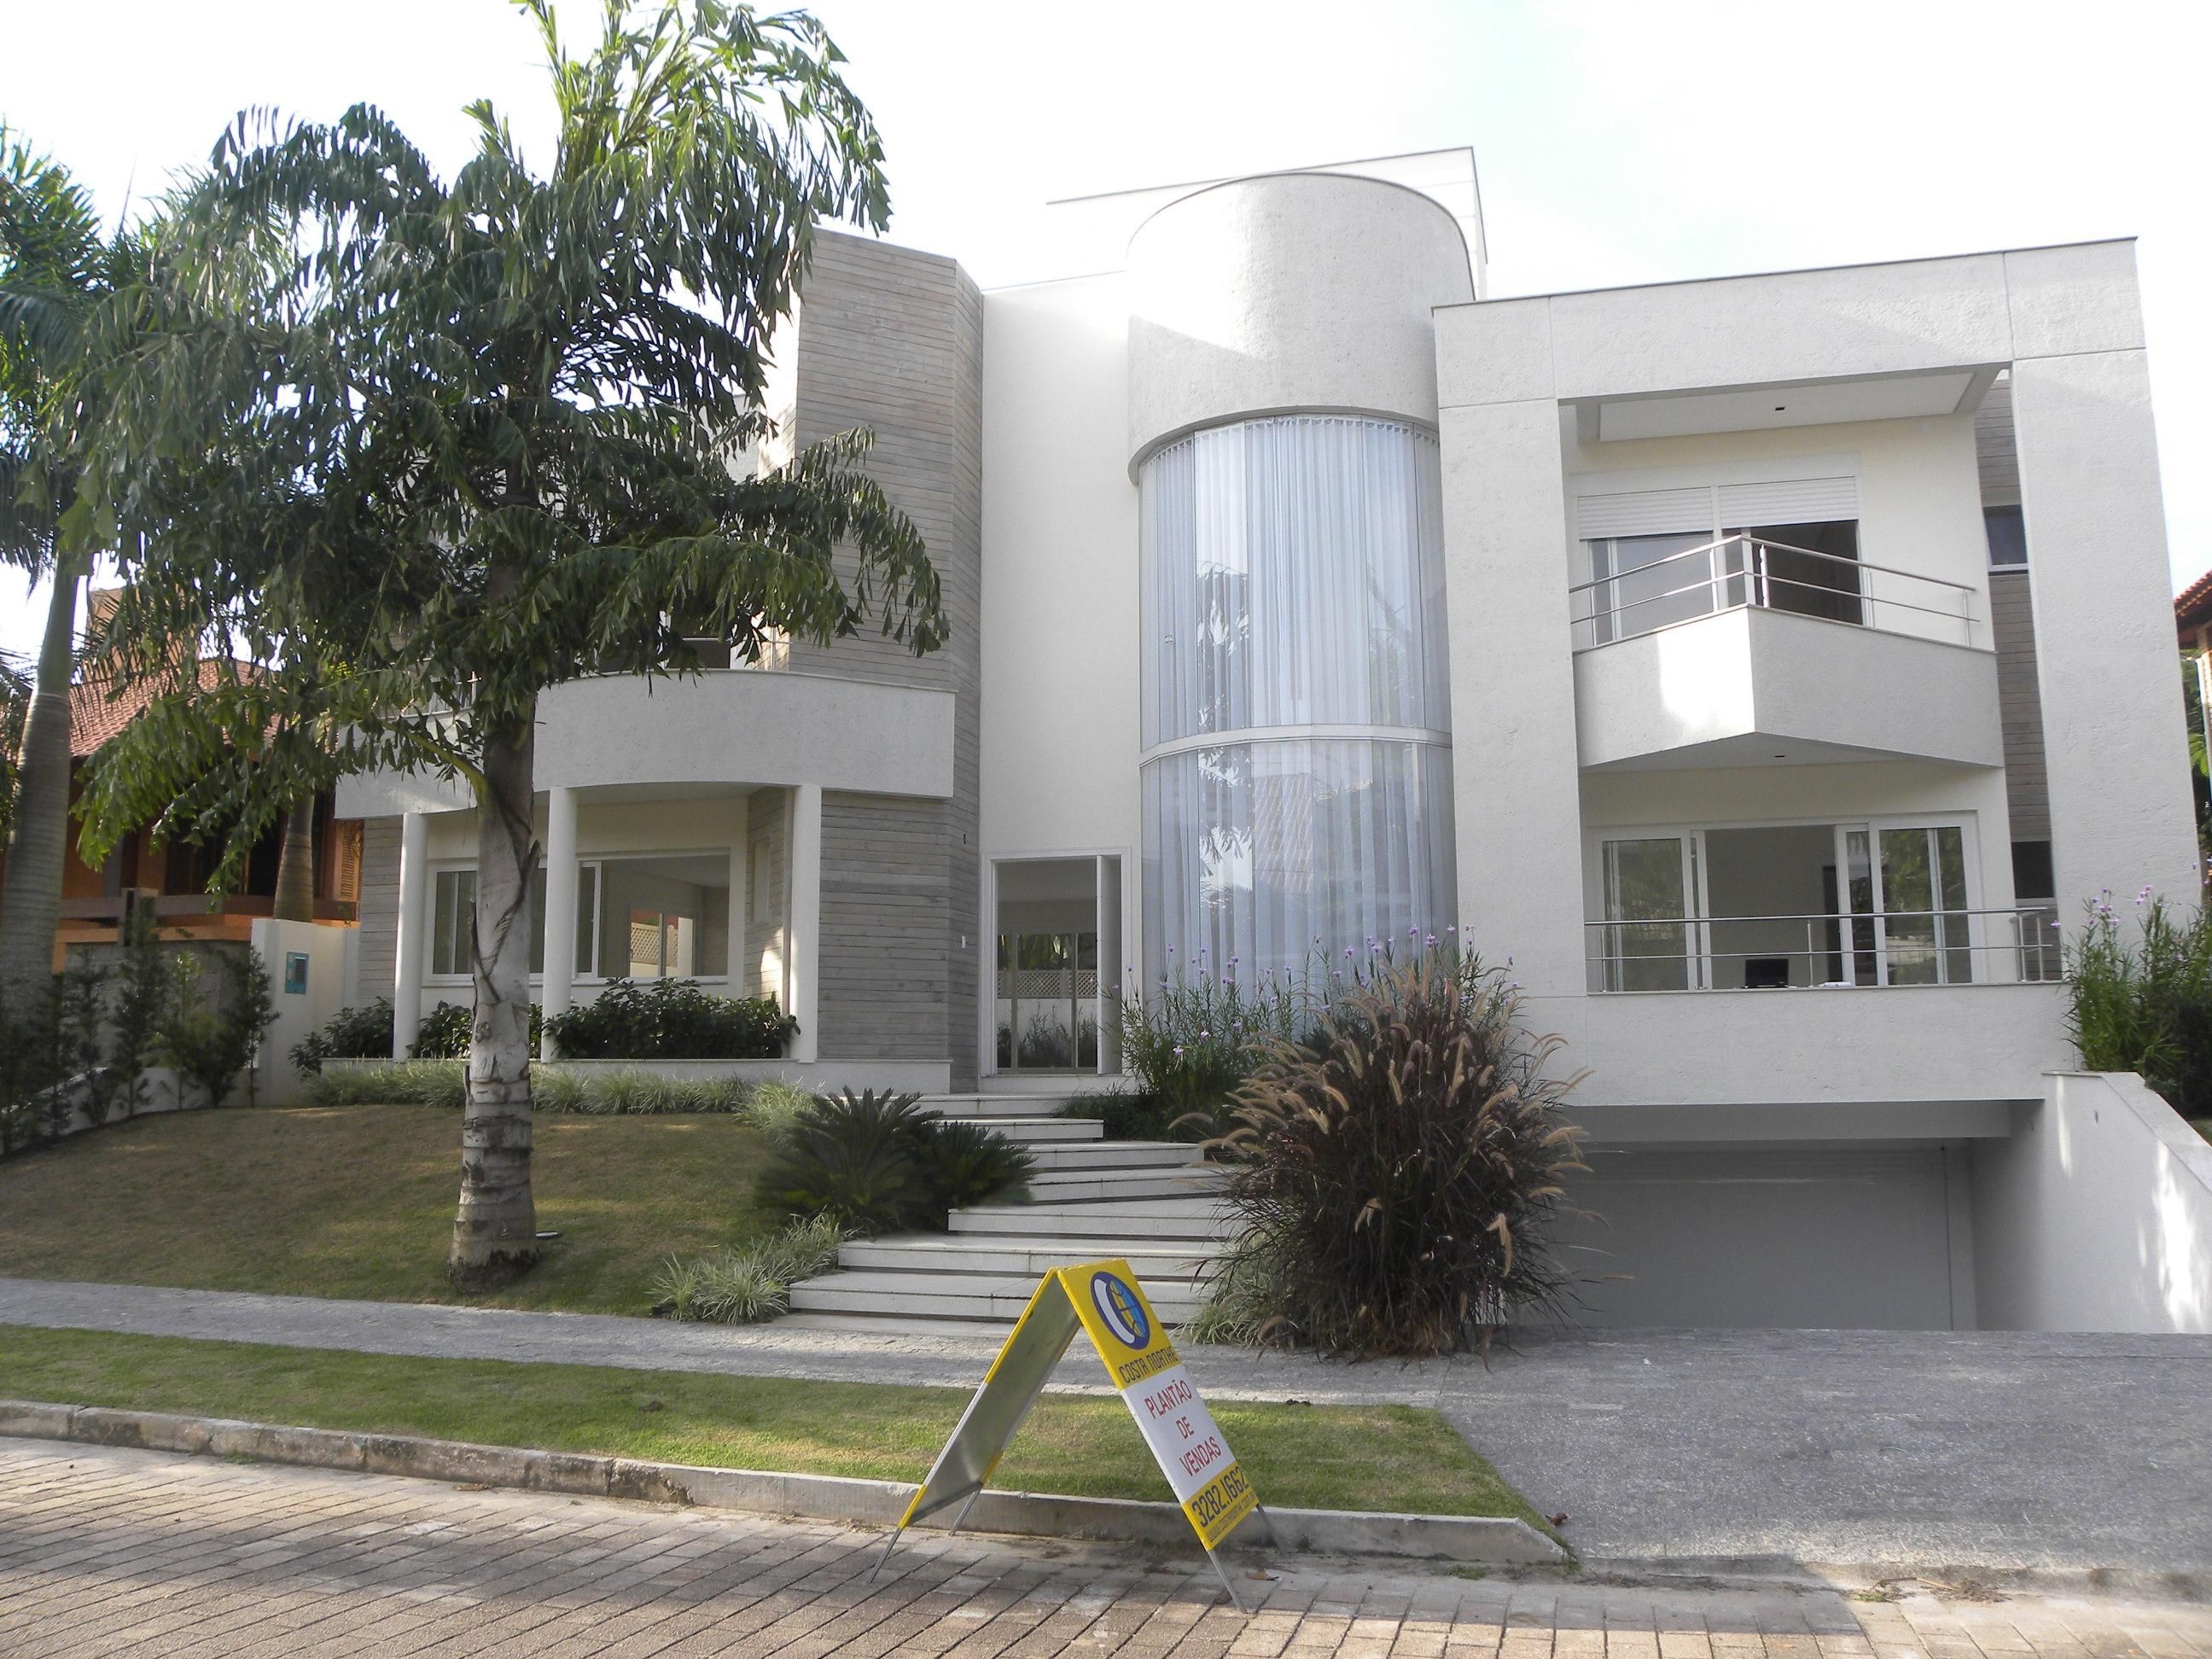 HOUSE 3 FLOORS WITH POOL IN JURERÉ INTERNACIONAL BEACH FLORIANÓPOLIS-BRAZIL. Noble area, street without continuity, one block from the sea, 720 m2, 5 suites, 3 floors, being Subsoil:Salón's feast, garage for 6 cars, bath, sauna, fitness, of pendency times of maid, laundry, deposit. Ground floor: large living room with space for 4 rooms with lareira